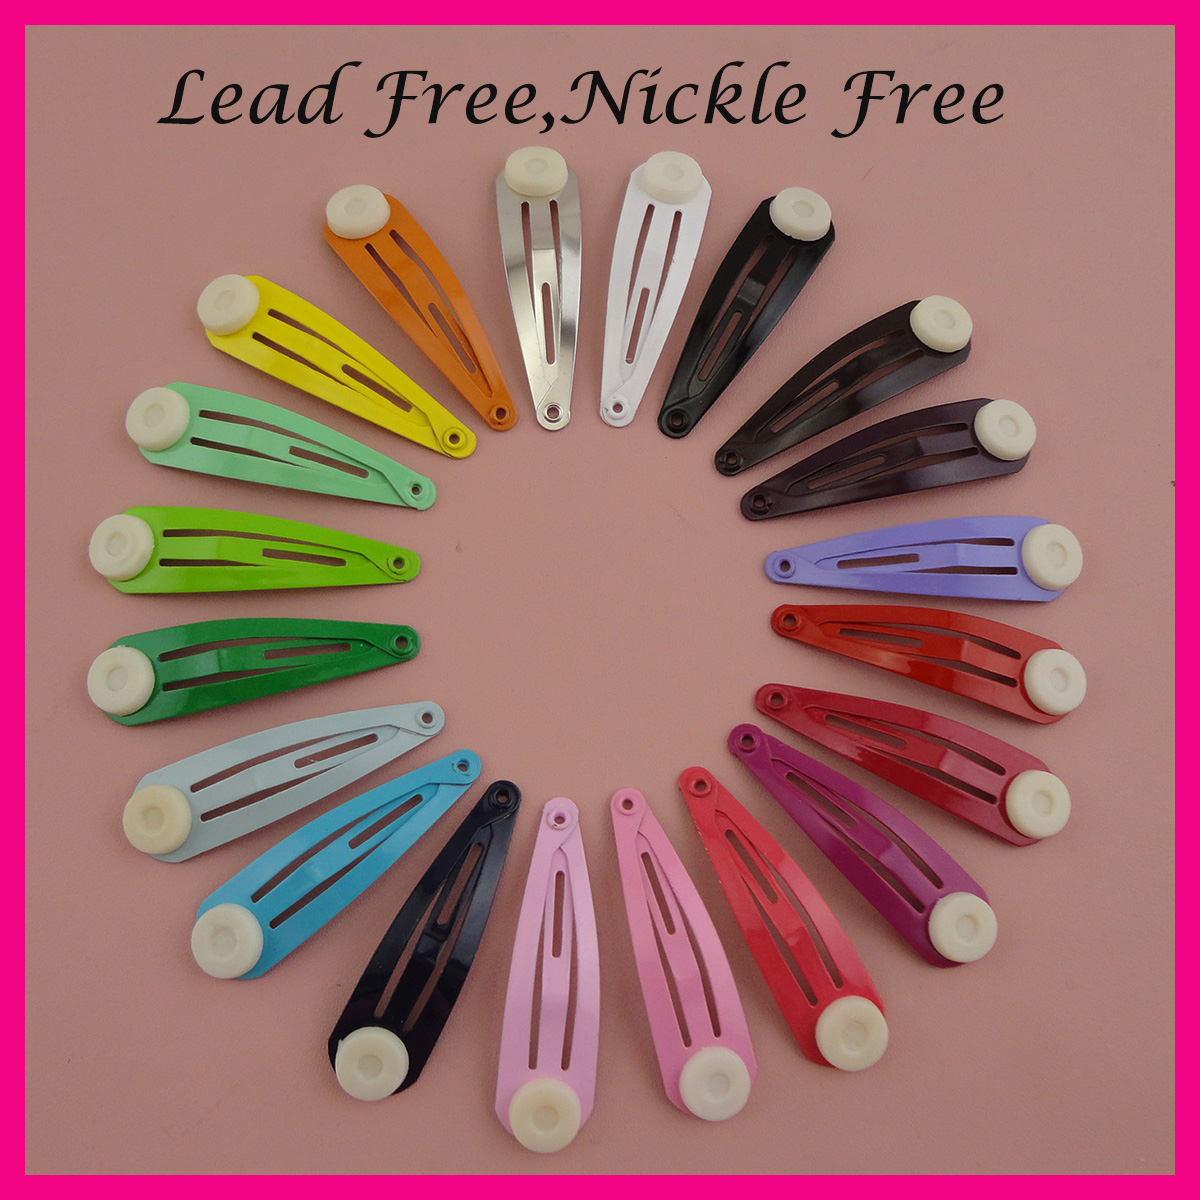 500PCS Assorted Colors 4.0cm 1.5 round head plain metal snap  clips with pad,nickle free,lead free,Kids size hair clips pin DIYmetal  snap cliphair clipsnap clips